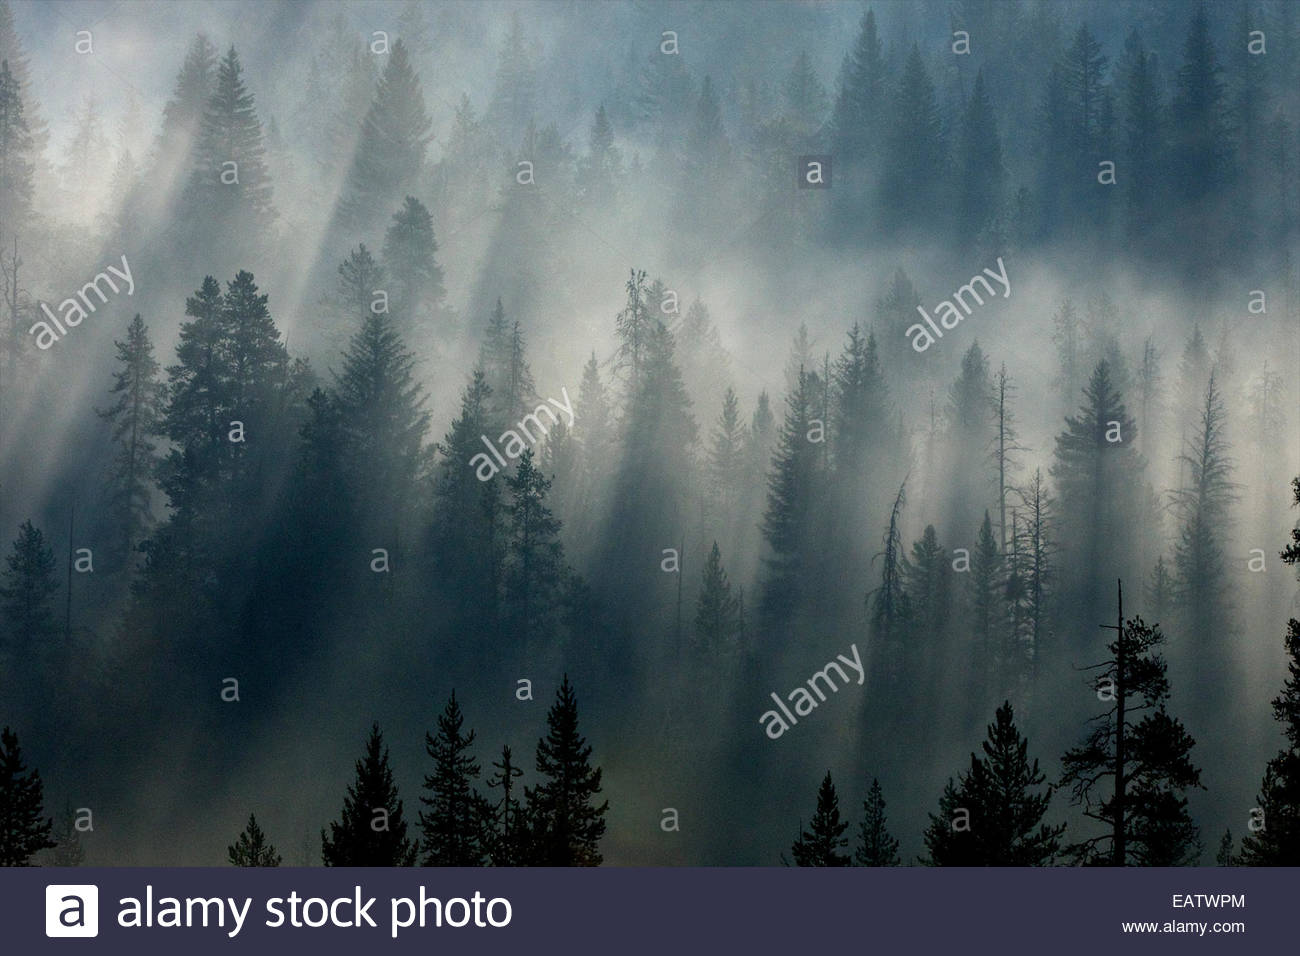 A forest appears out of the morning fog. - Stock Image